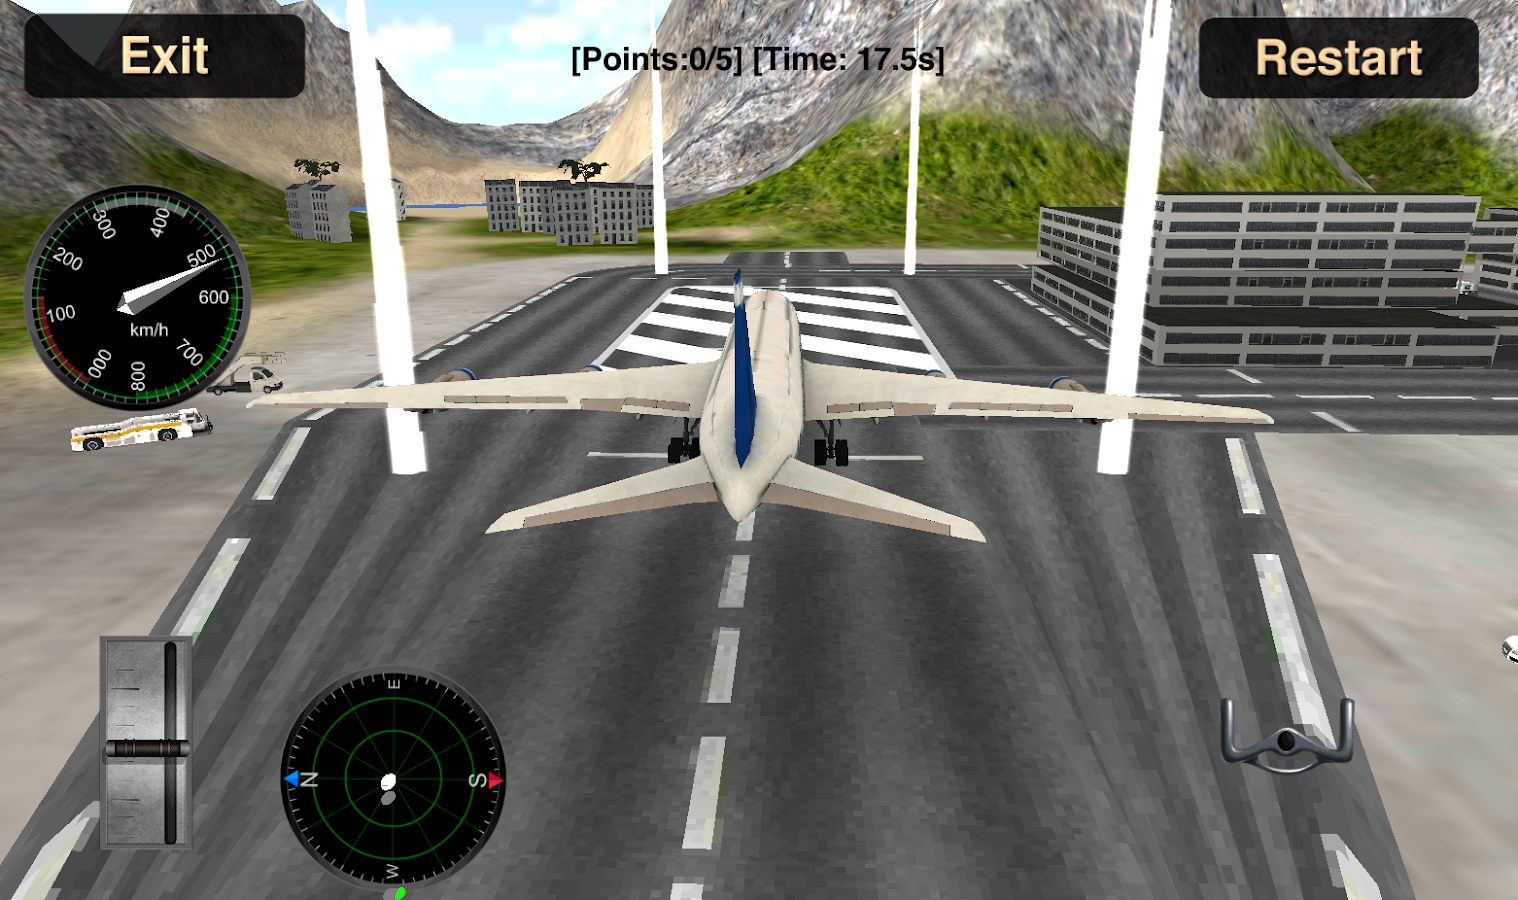 Flight-Simulator-Fly-Plane-3D 21